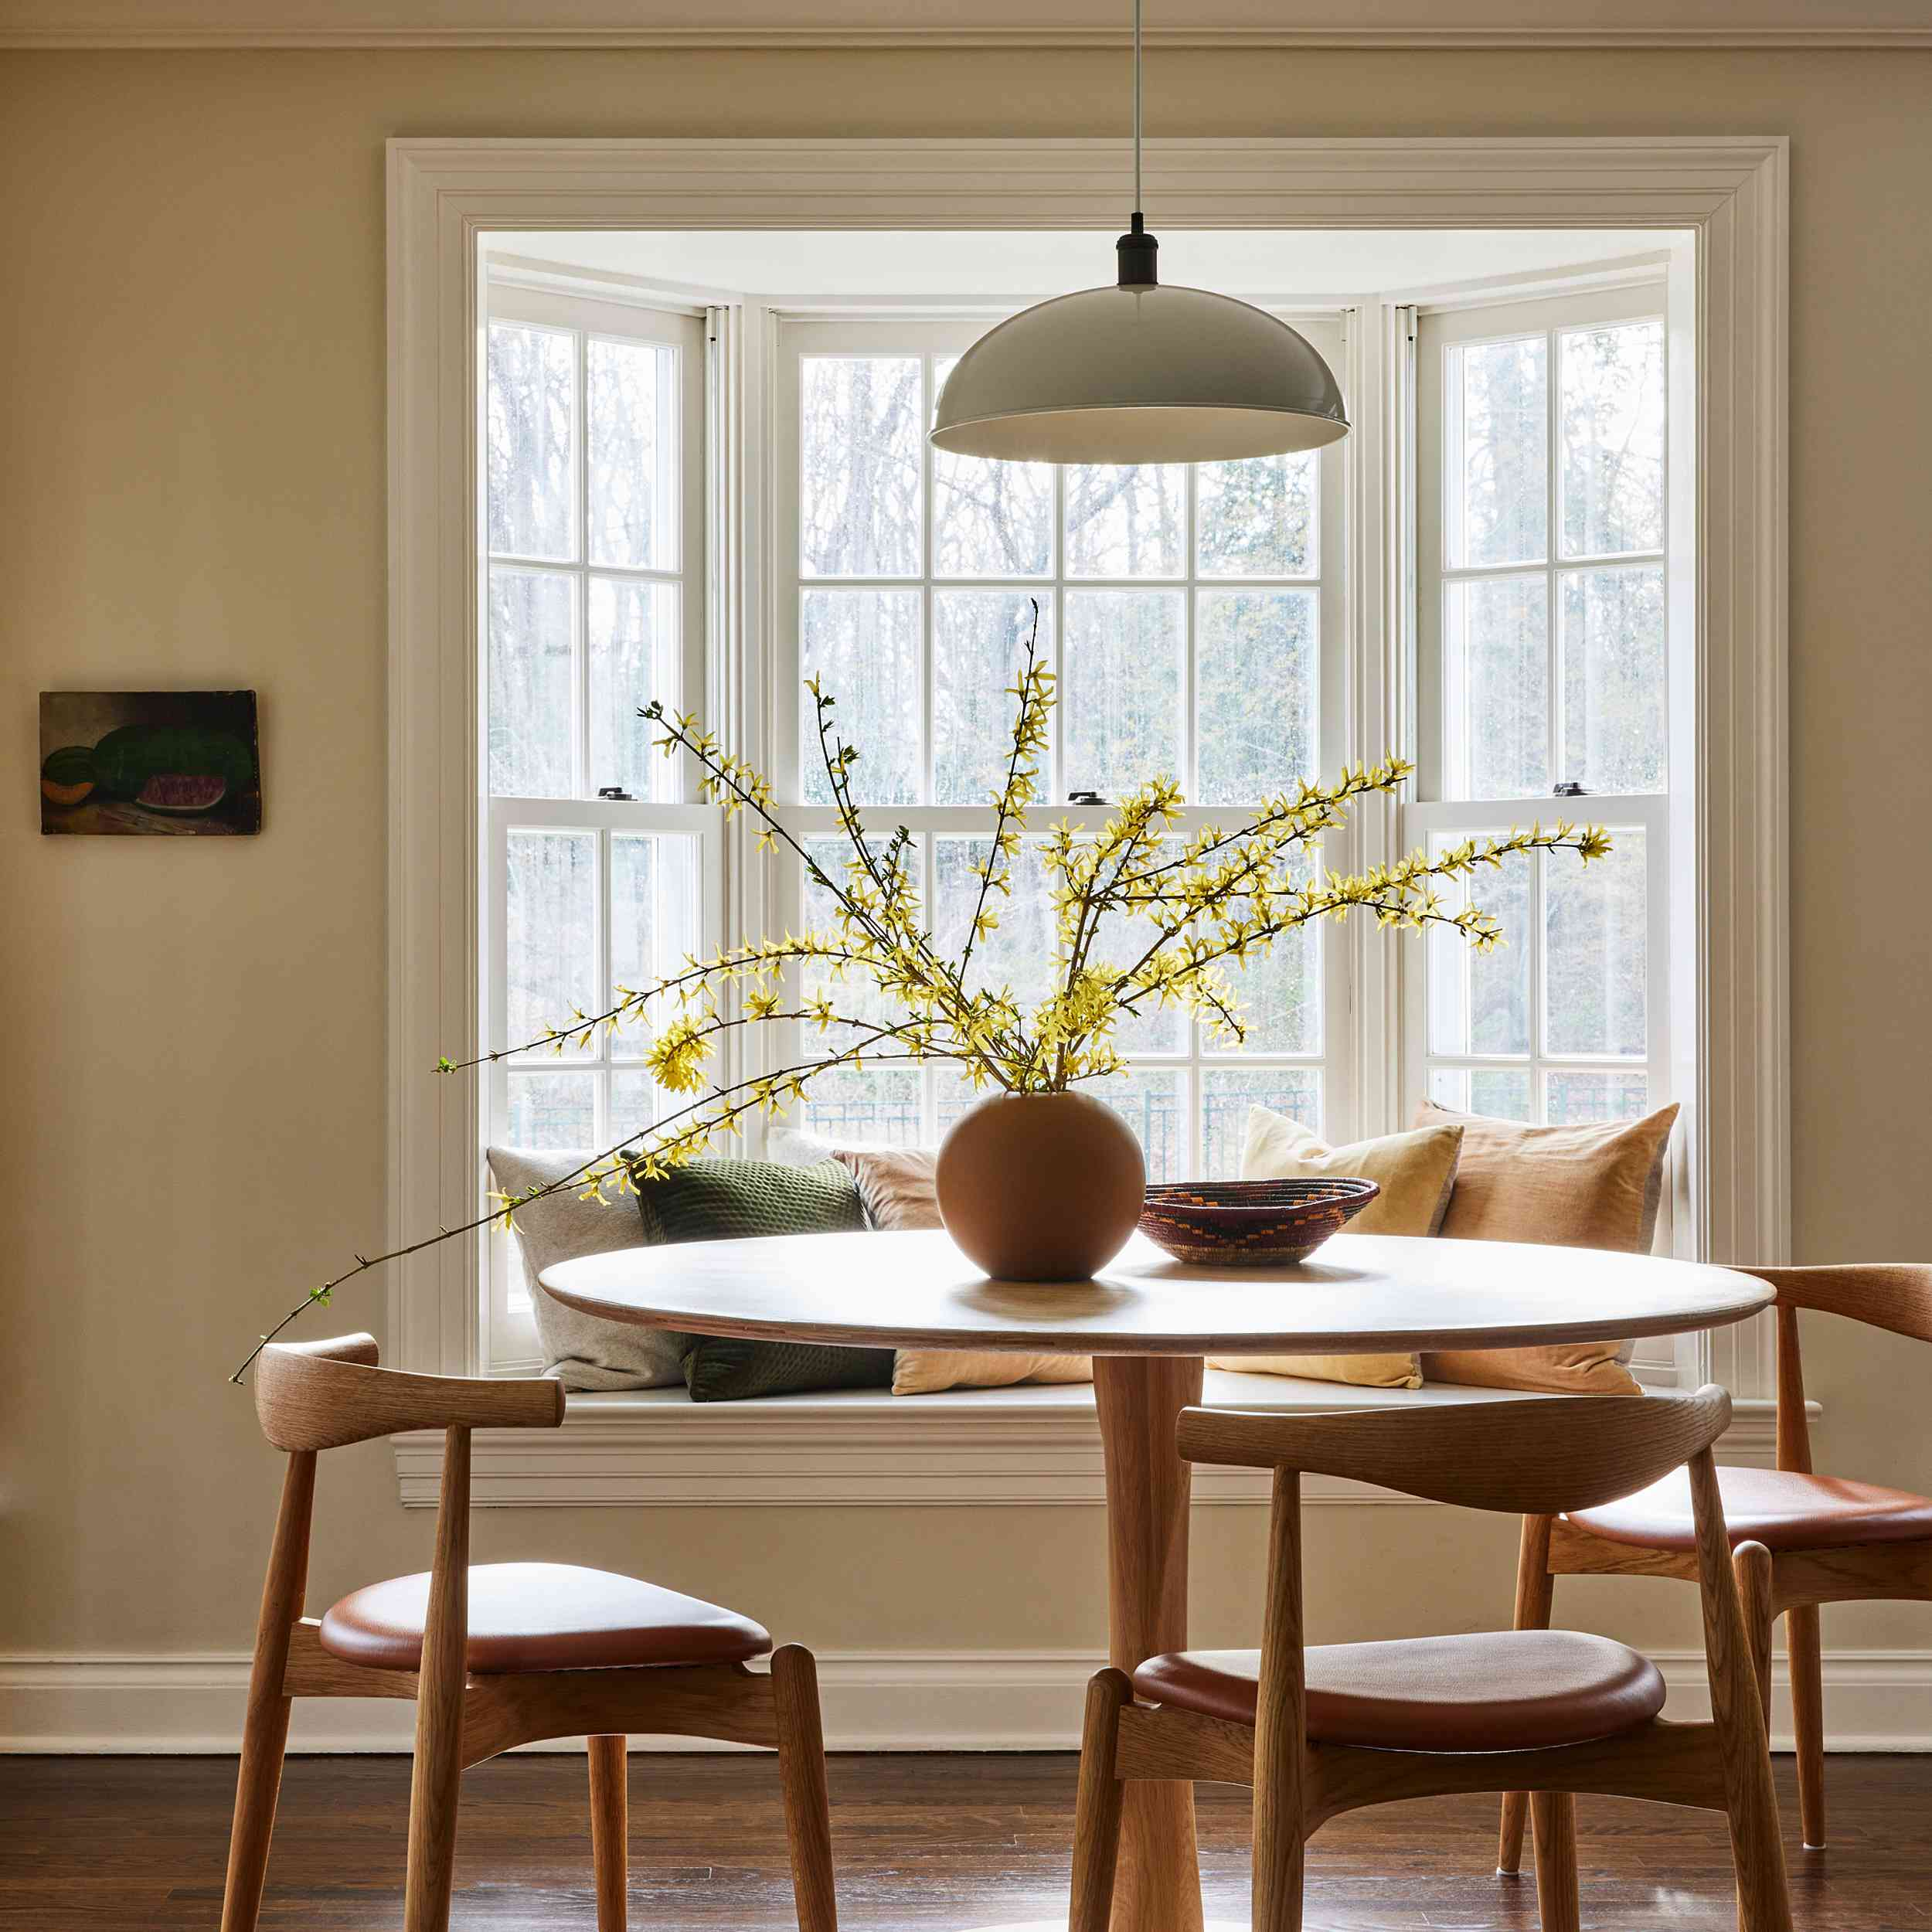 connecticut farmhouse home tour - breakfast area with built-in window seat